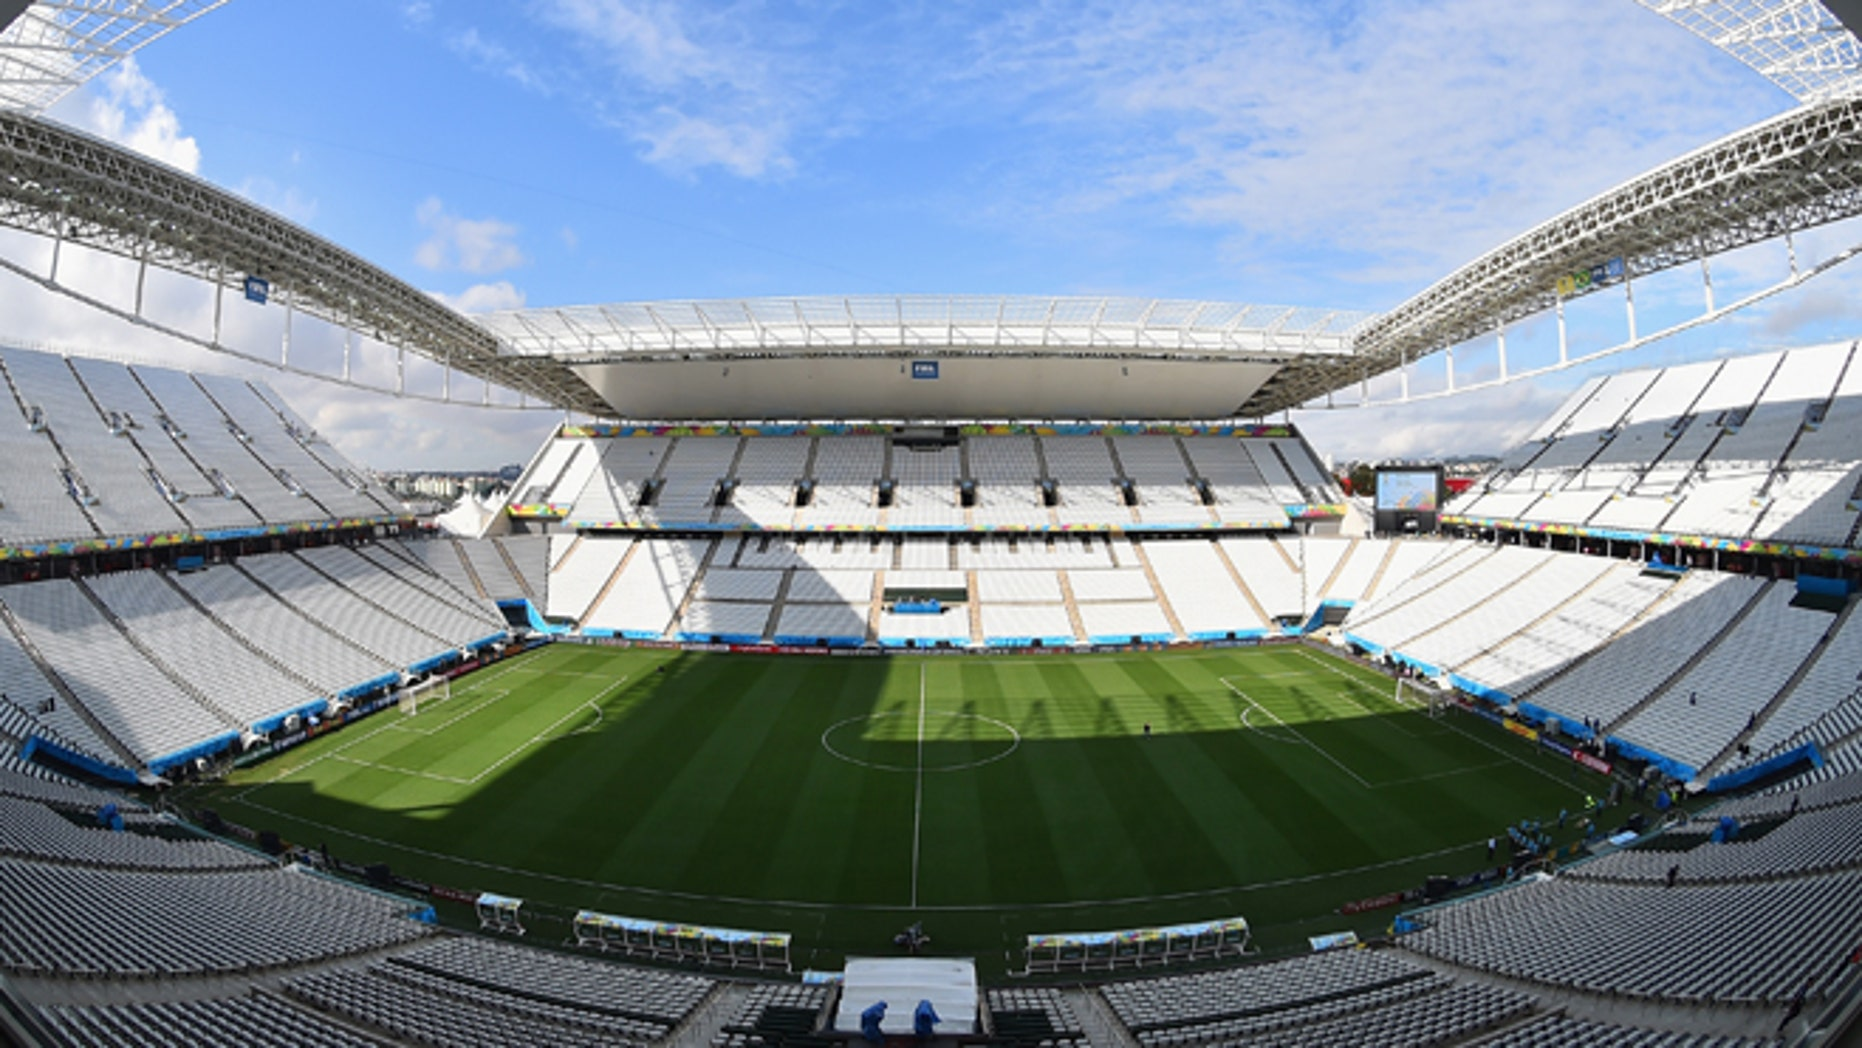 A general view of Arena de São Paulo during a Brazil training session ahead of the 2014 FIFA World Cup Brazil opening match against Croatia on June 11, 2014 in Sao Paulo, Brazil.  (Photo by Buda Mendes/Getty Images)